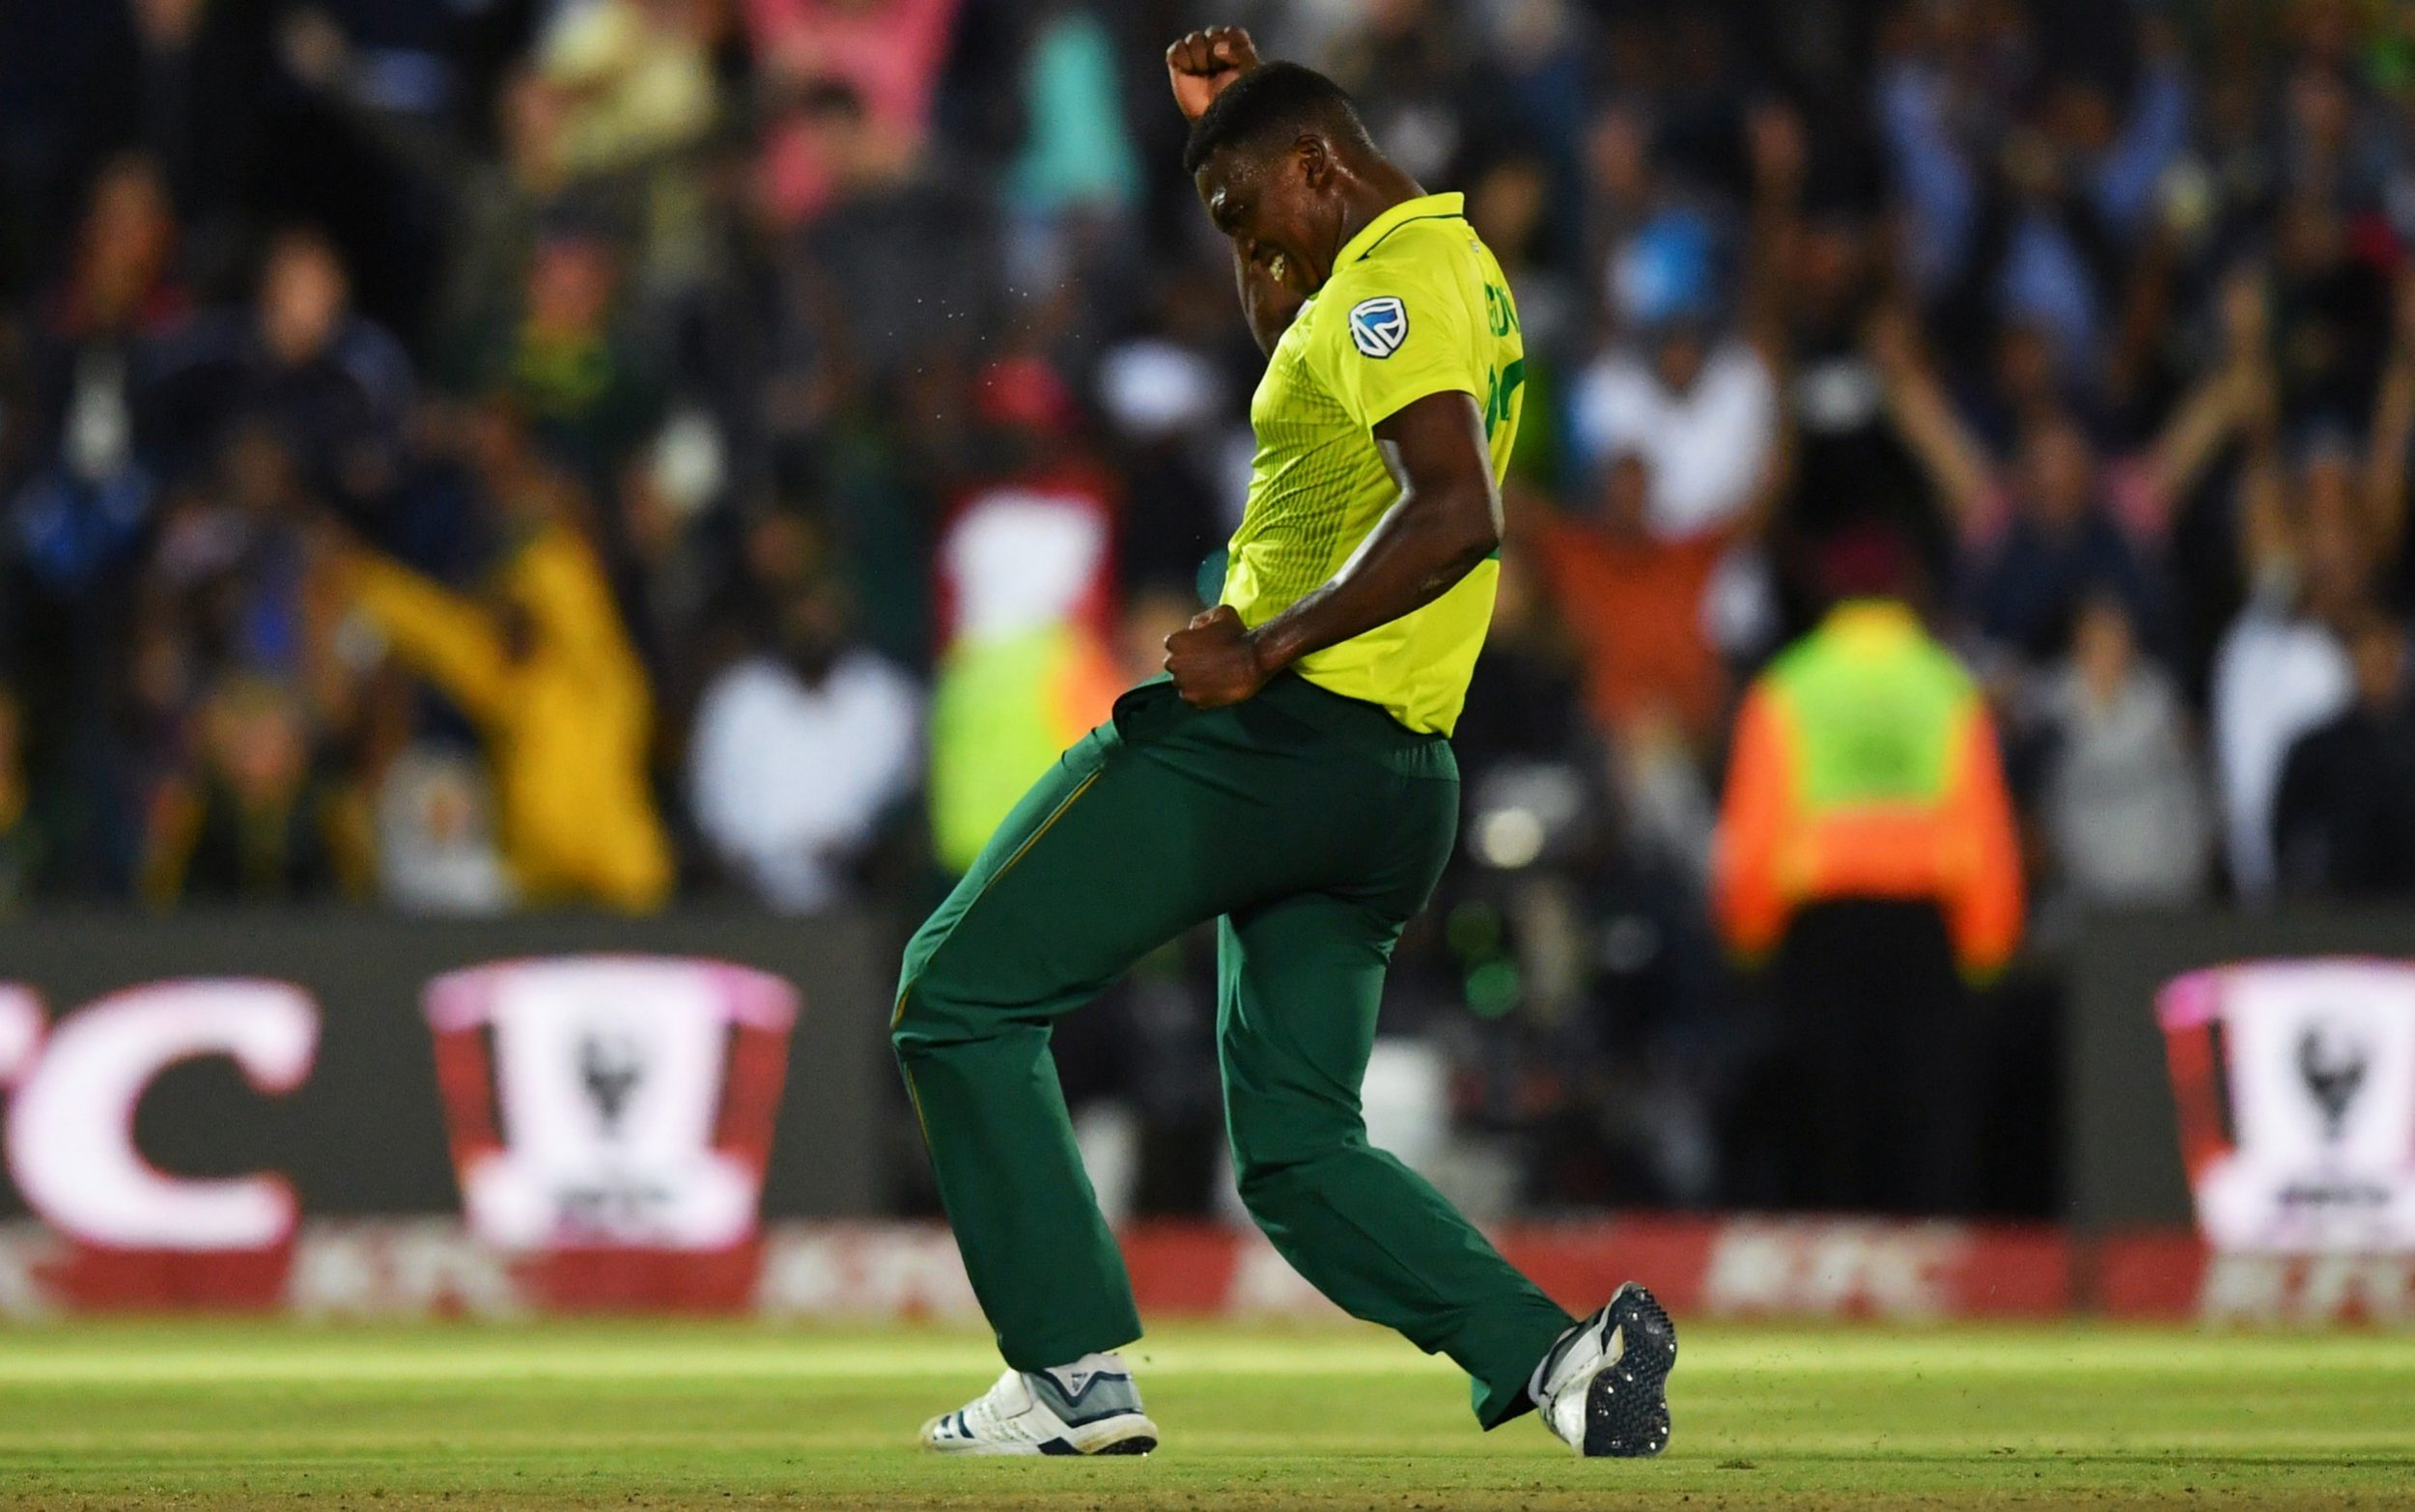 South Africa edge England by one run in opening T20 thriller - Sports Leo